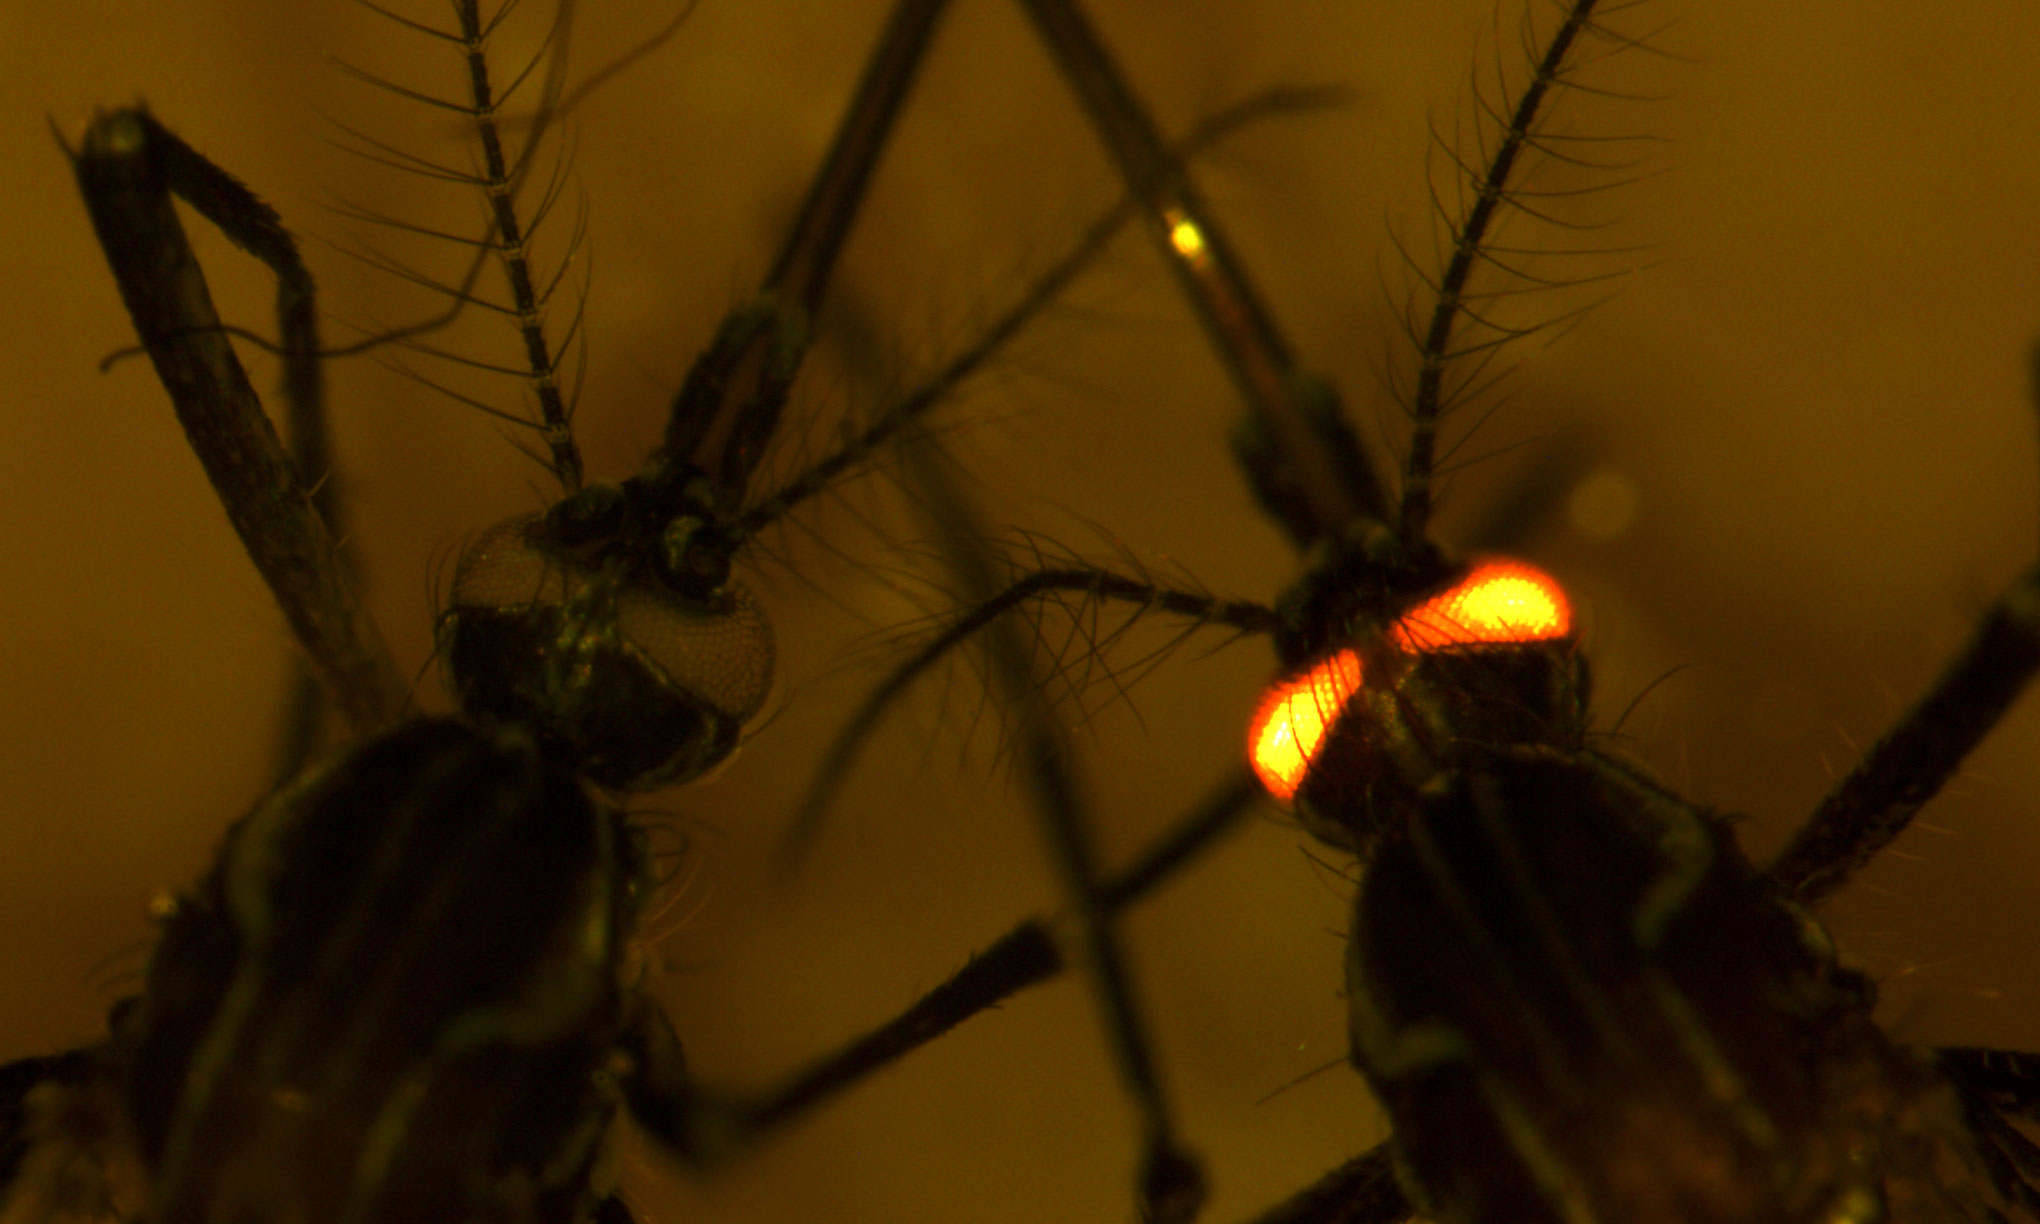 Close up of a mosquito on the right with glowing red eyes (dengue resistant red-eye gene), and a mosquito on the left with normal eyes.